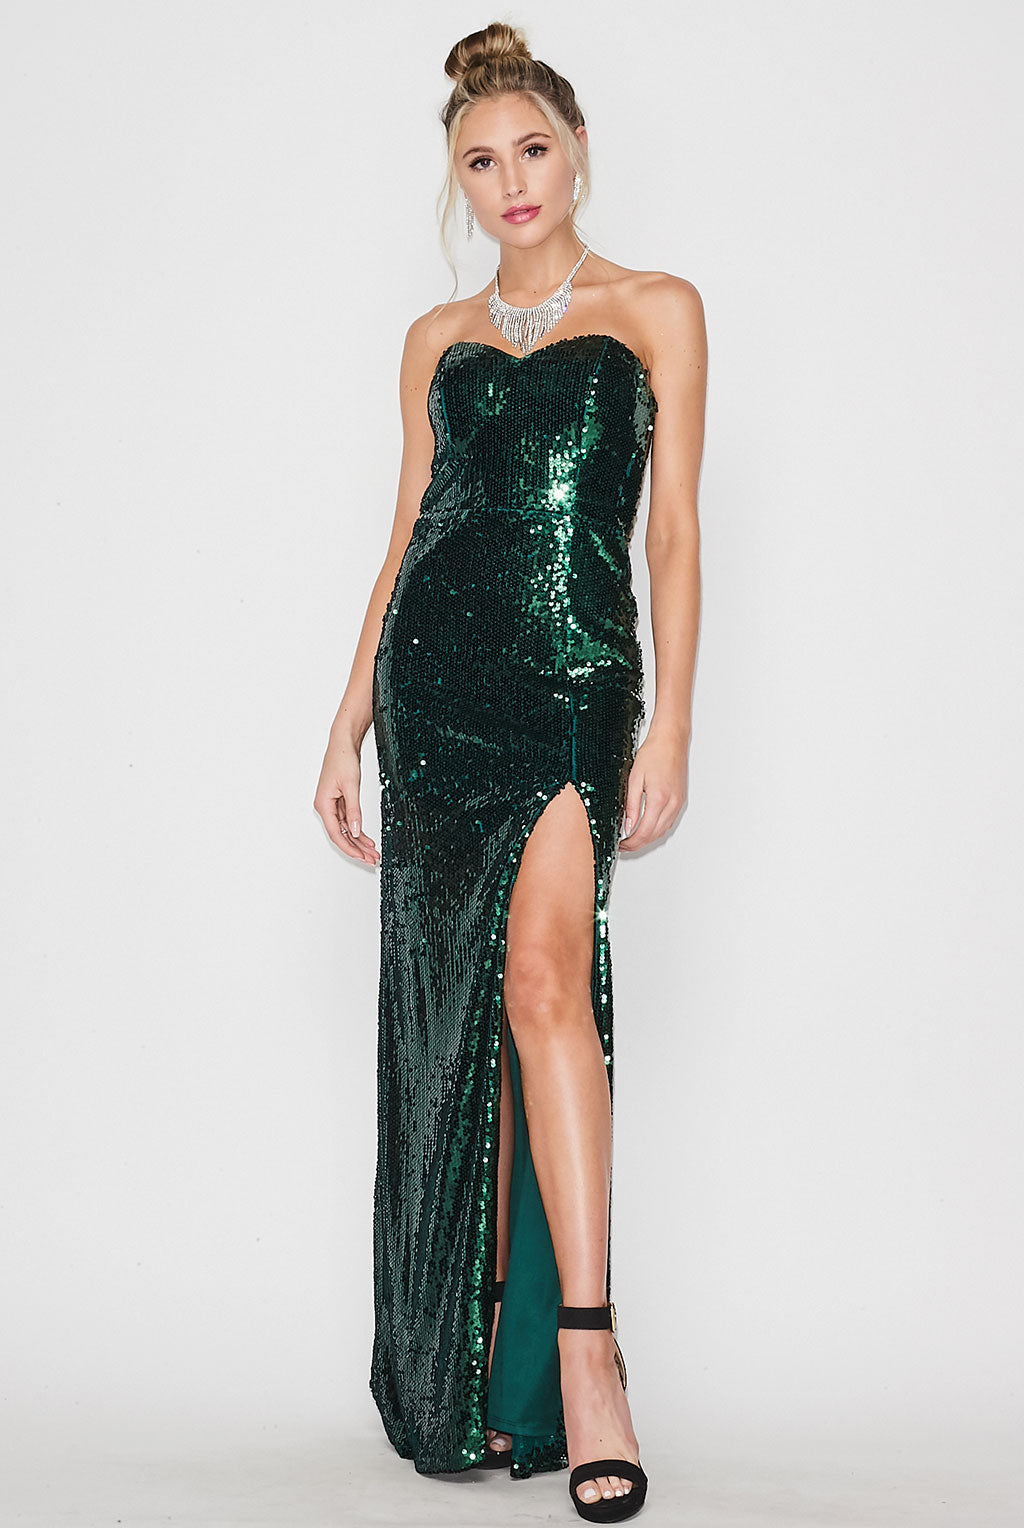 Teeze Me | Strapless Sweetheart Neck All Sequin Long Formal Dress | Emerald